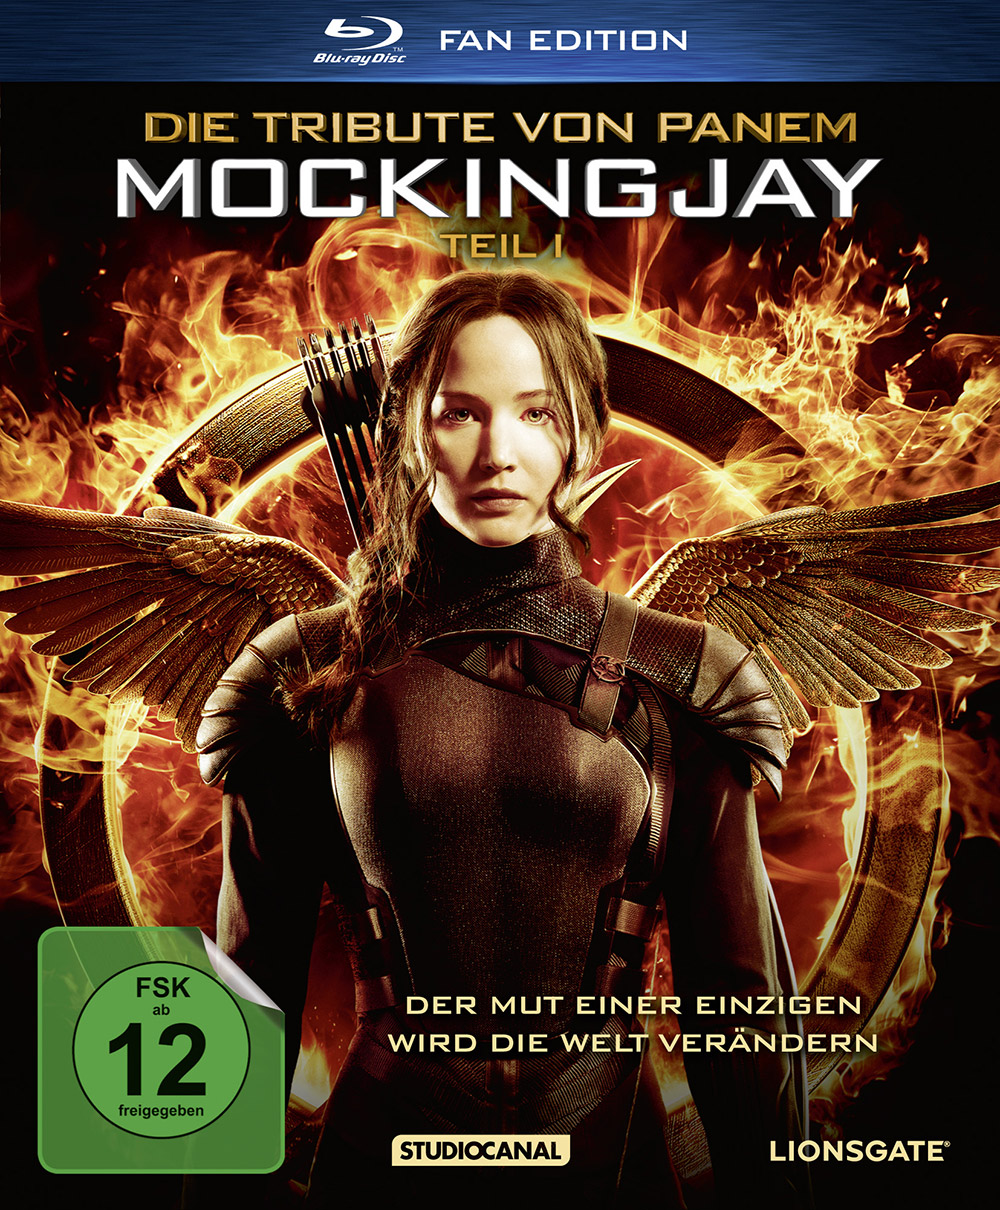 DieTributeVonPanem-Mockingjay1_FanEdition_BluRay_klein